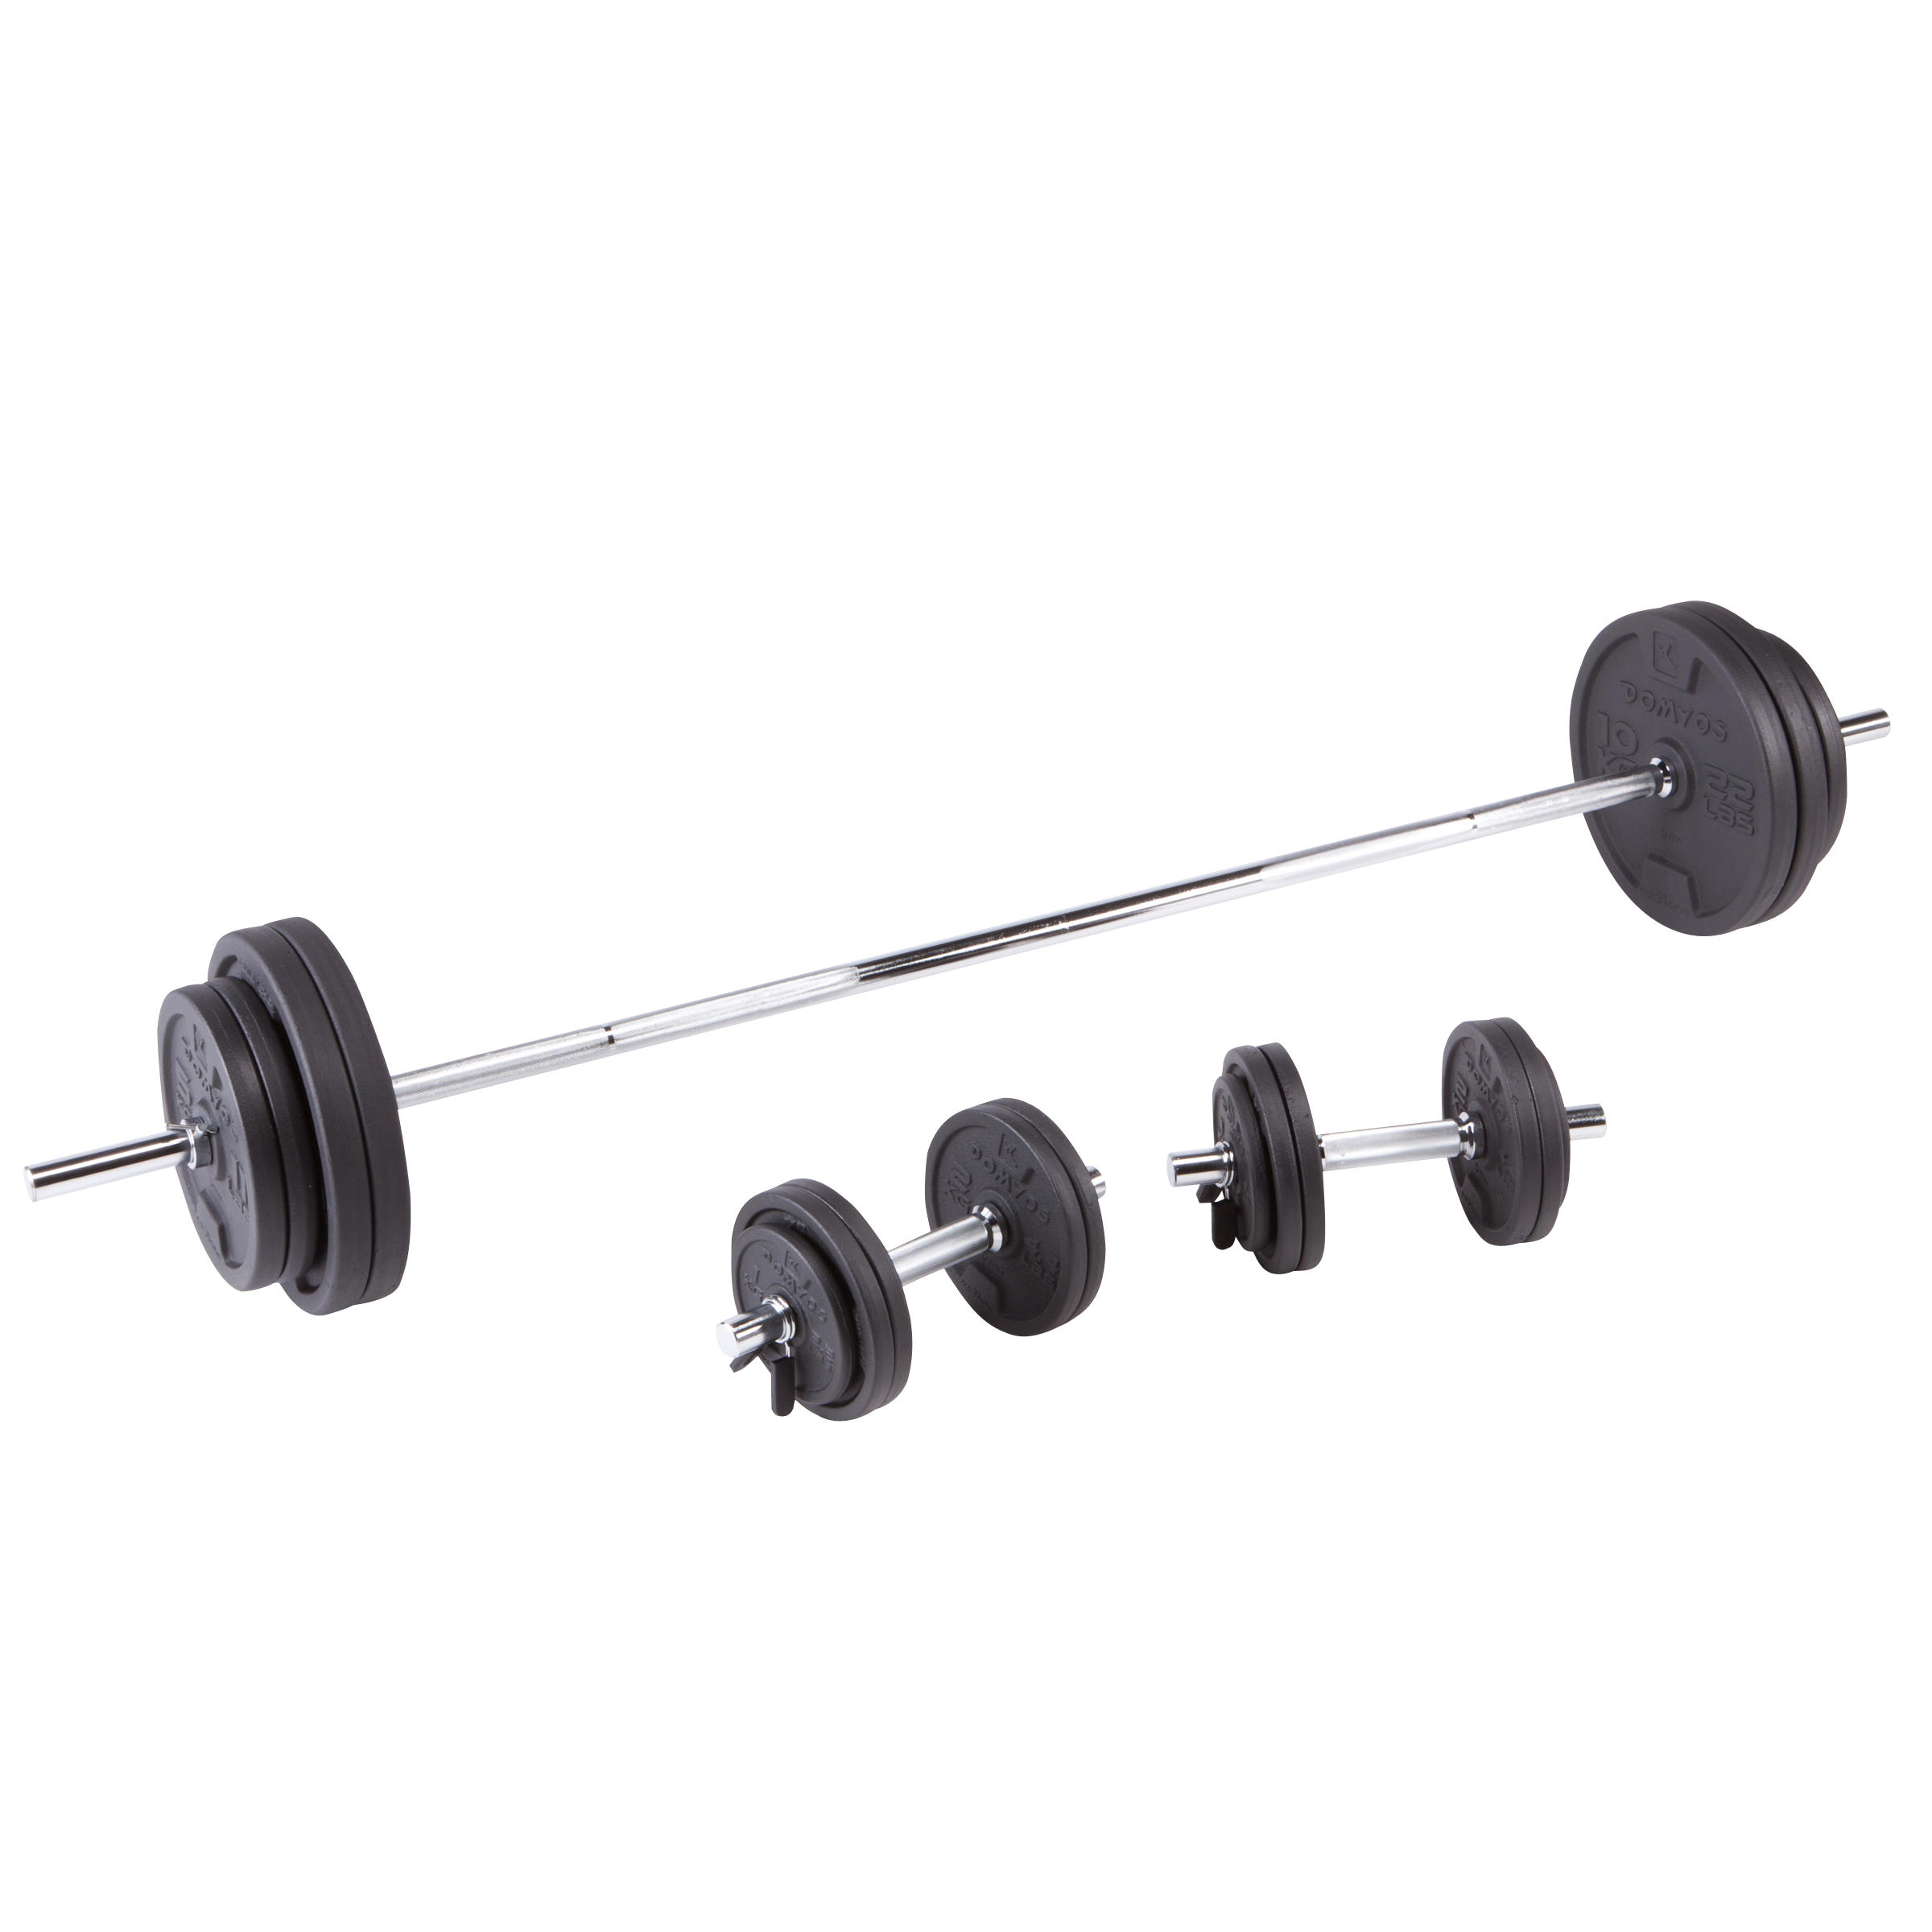 Dumbbells and Bars Weight...